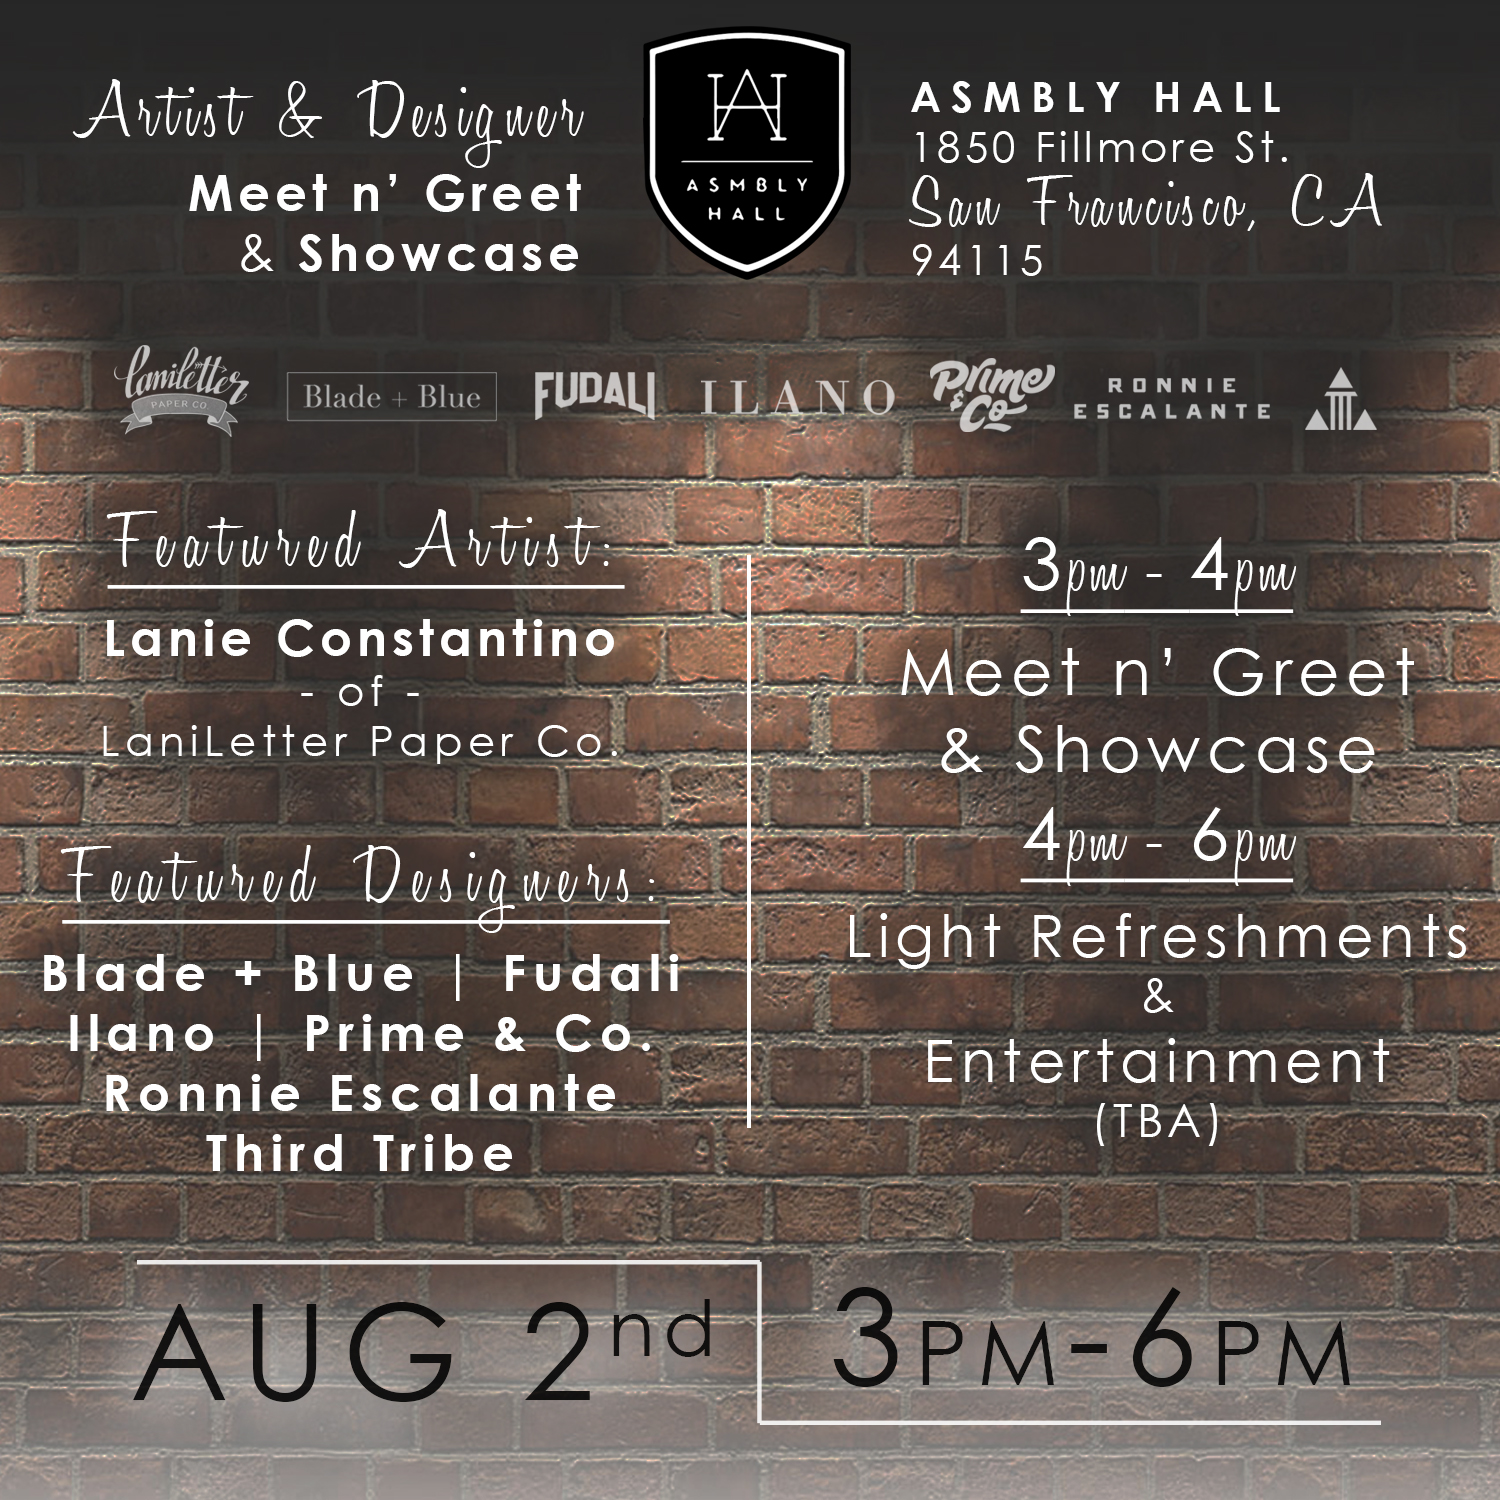 asmbly hall flyer